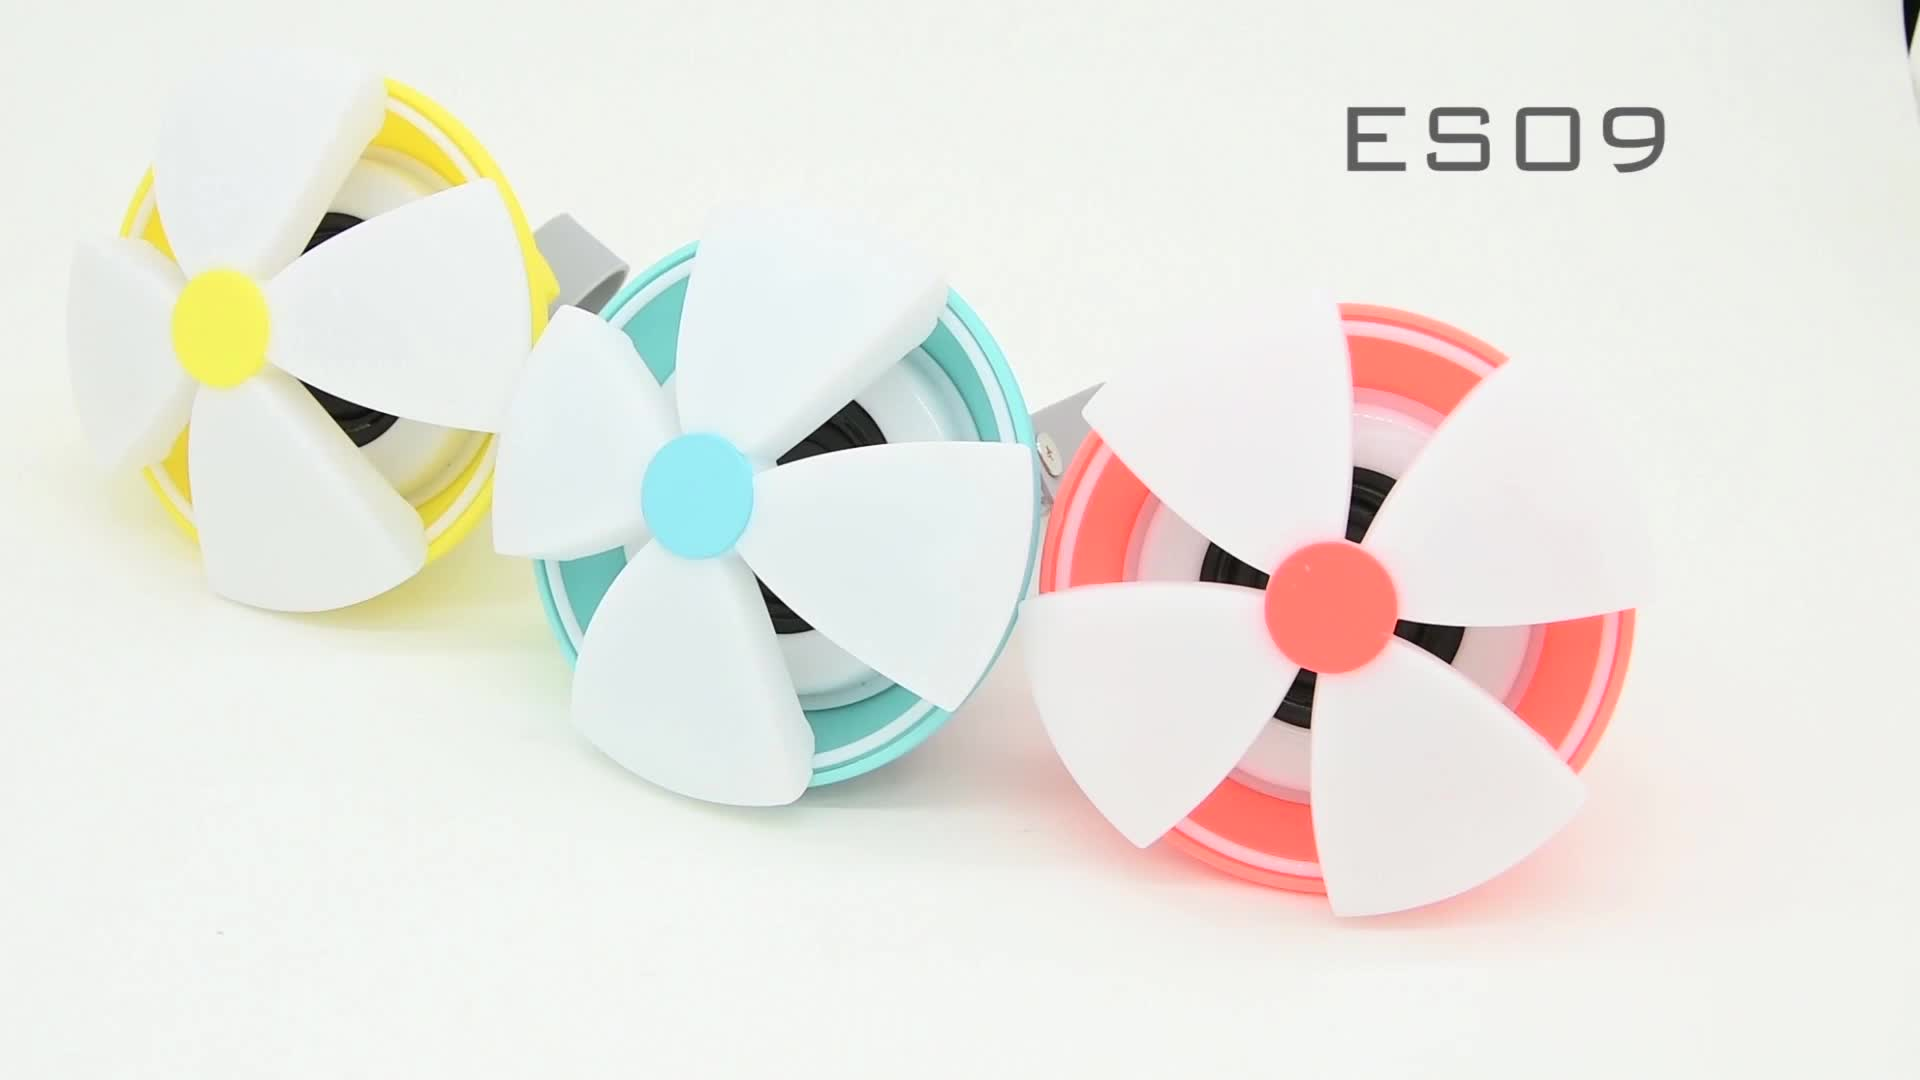 Eson Style 7 LED Light RGB lamp Shinny flower pretty IPX4 Waterproof Bluetooth outdoor Carabiner Wireless Speaker